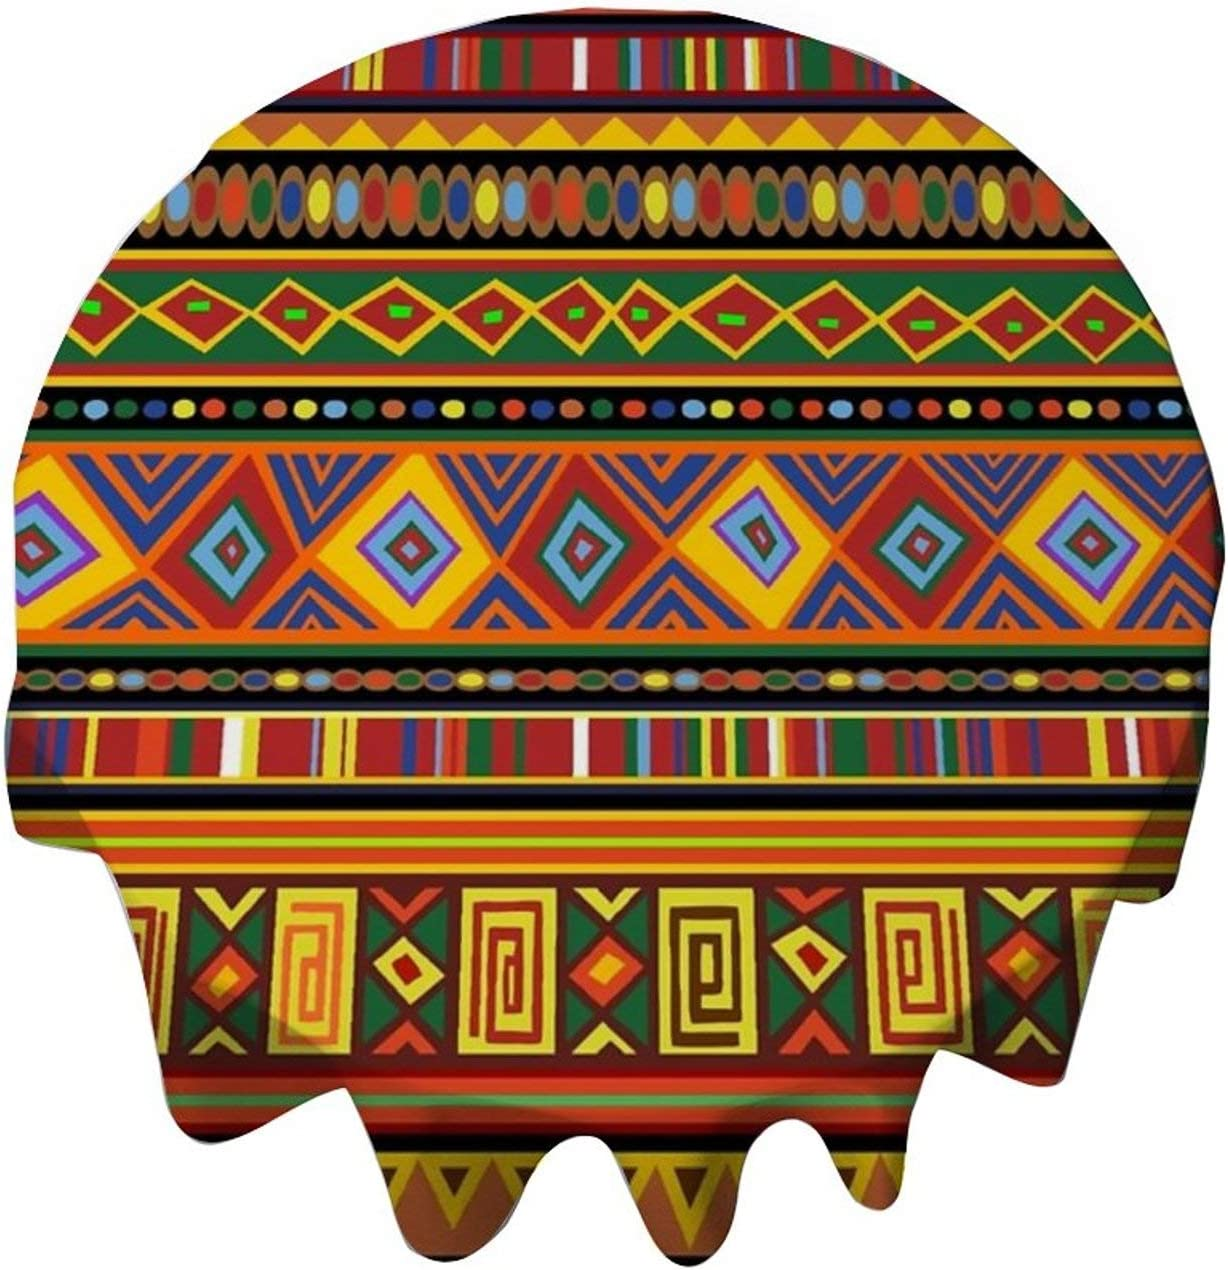 yyone Tablecloth Round 54 Inch Table Cover Ethnic Colorful Pattern Africa Art Table Cloth Decor for Buffet Table, Parties, Holiday Dinner, Wedding & More